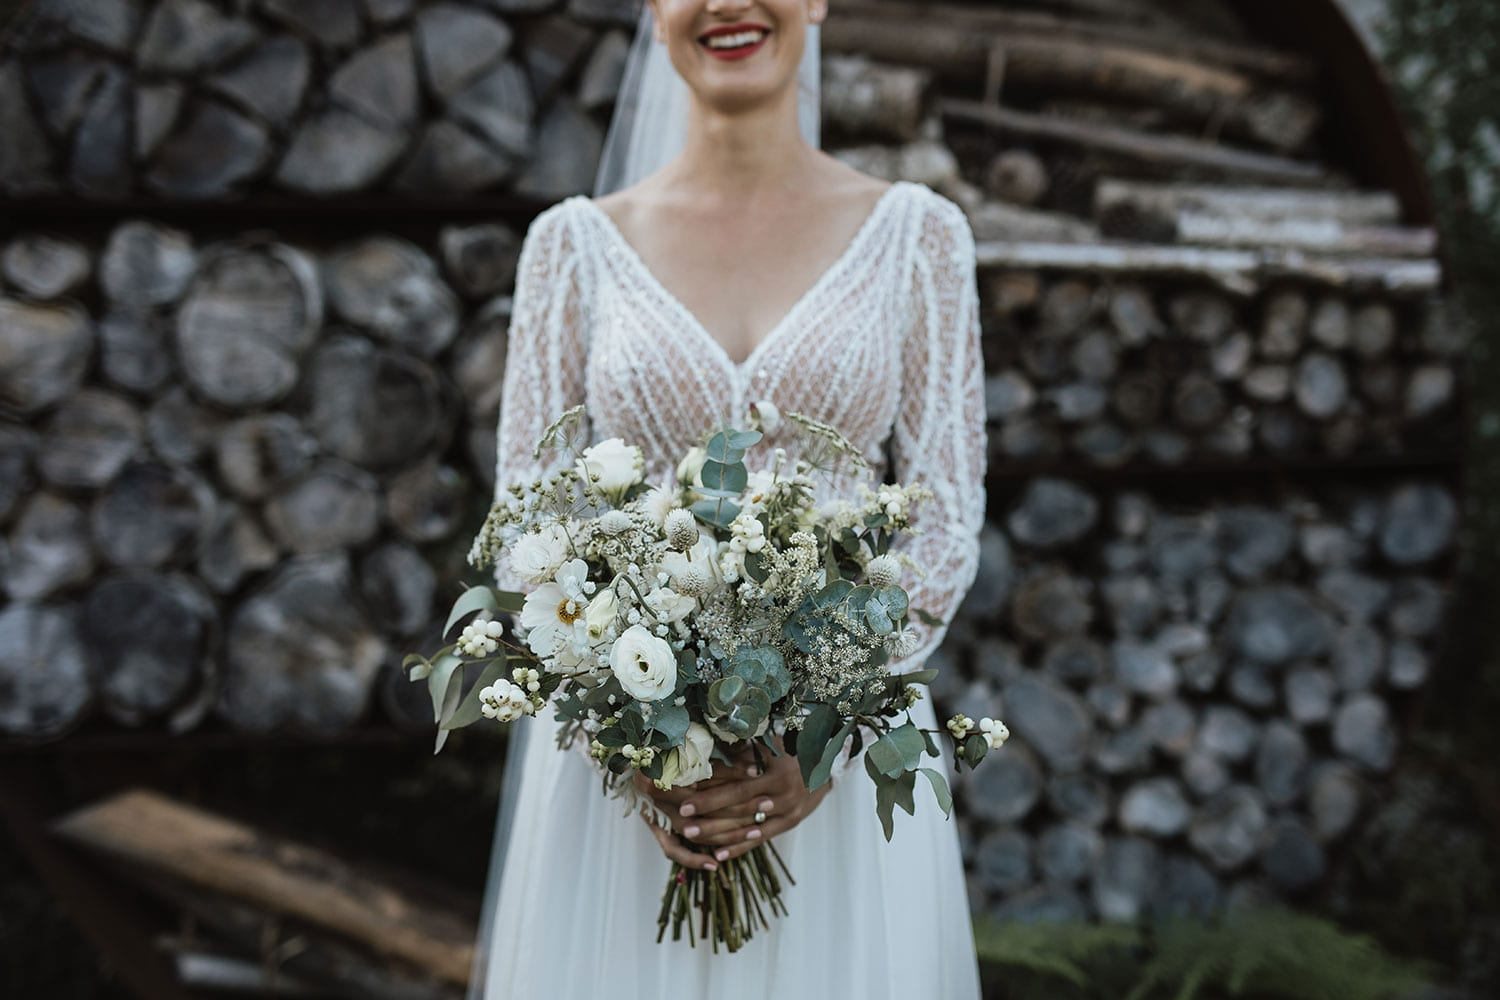 Vinka Design Features Real Weddings - Bride in custom made gown with bold lace bodice with fitted, long, beaded lace sleeves. Bouquet